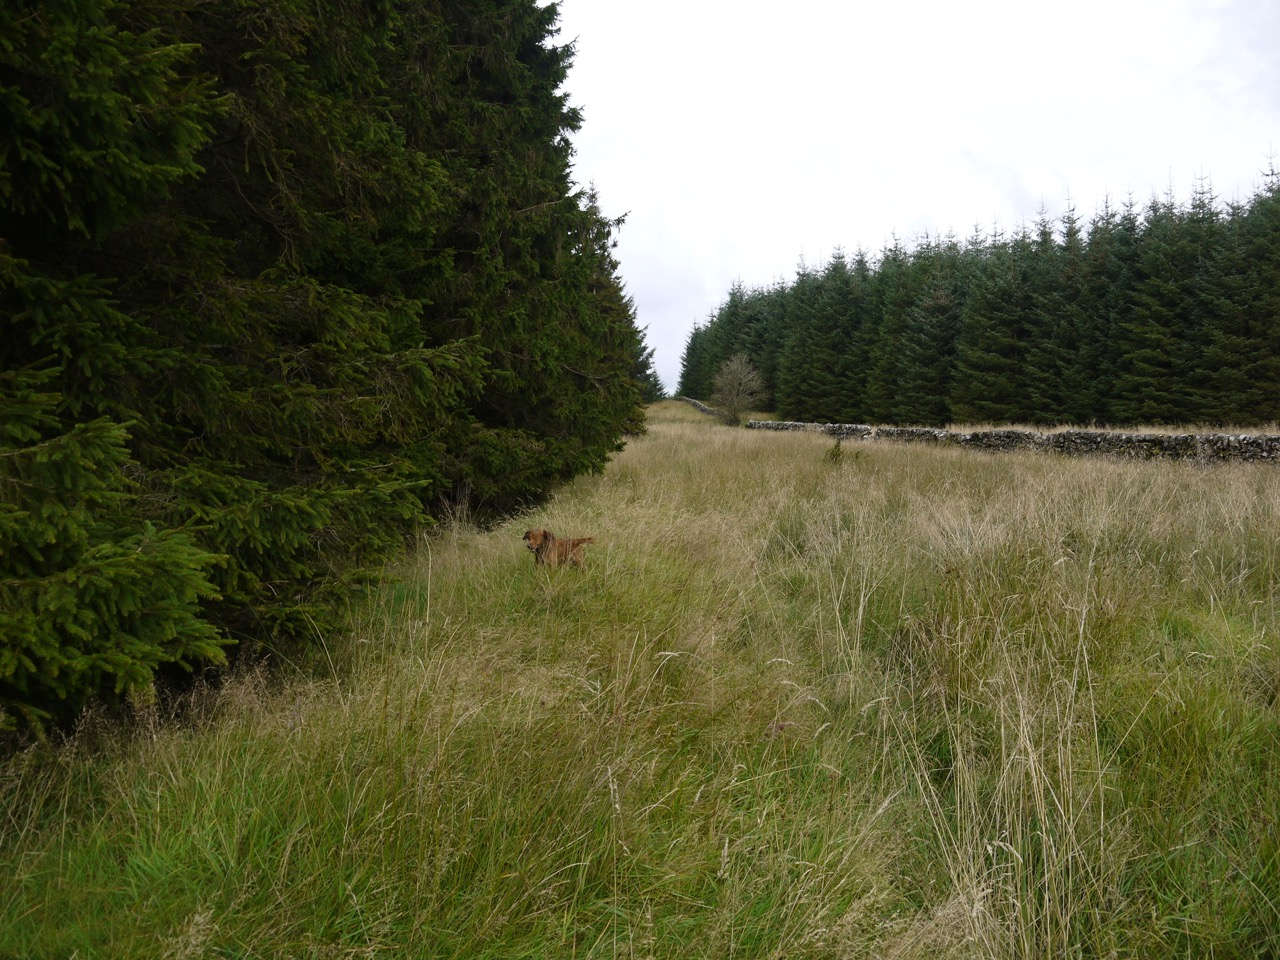 Forest break leading to Souter's Grave